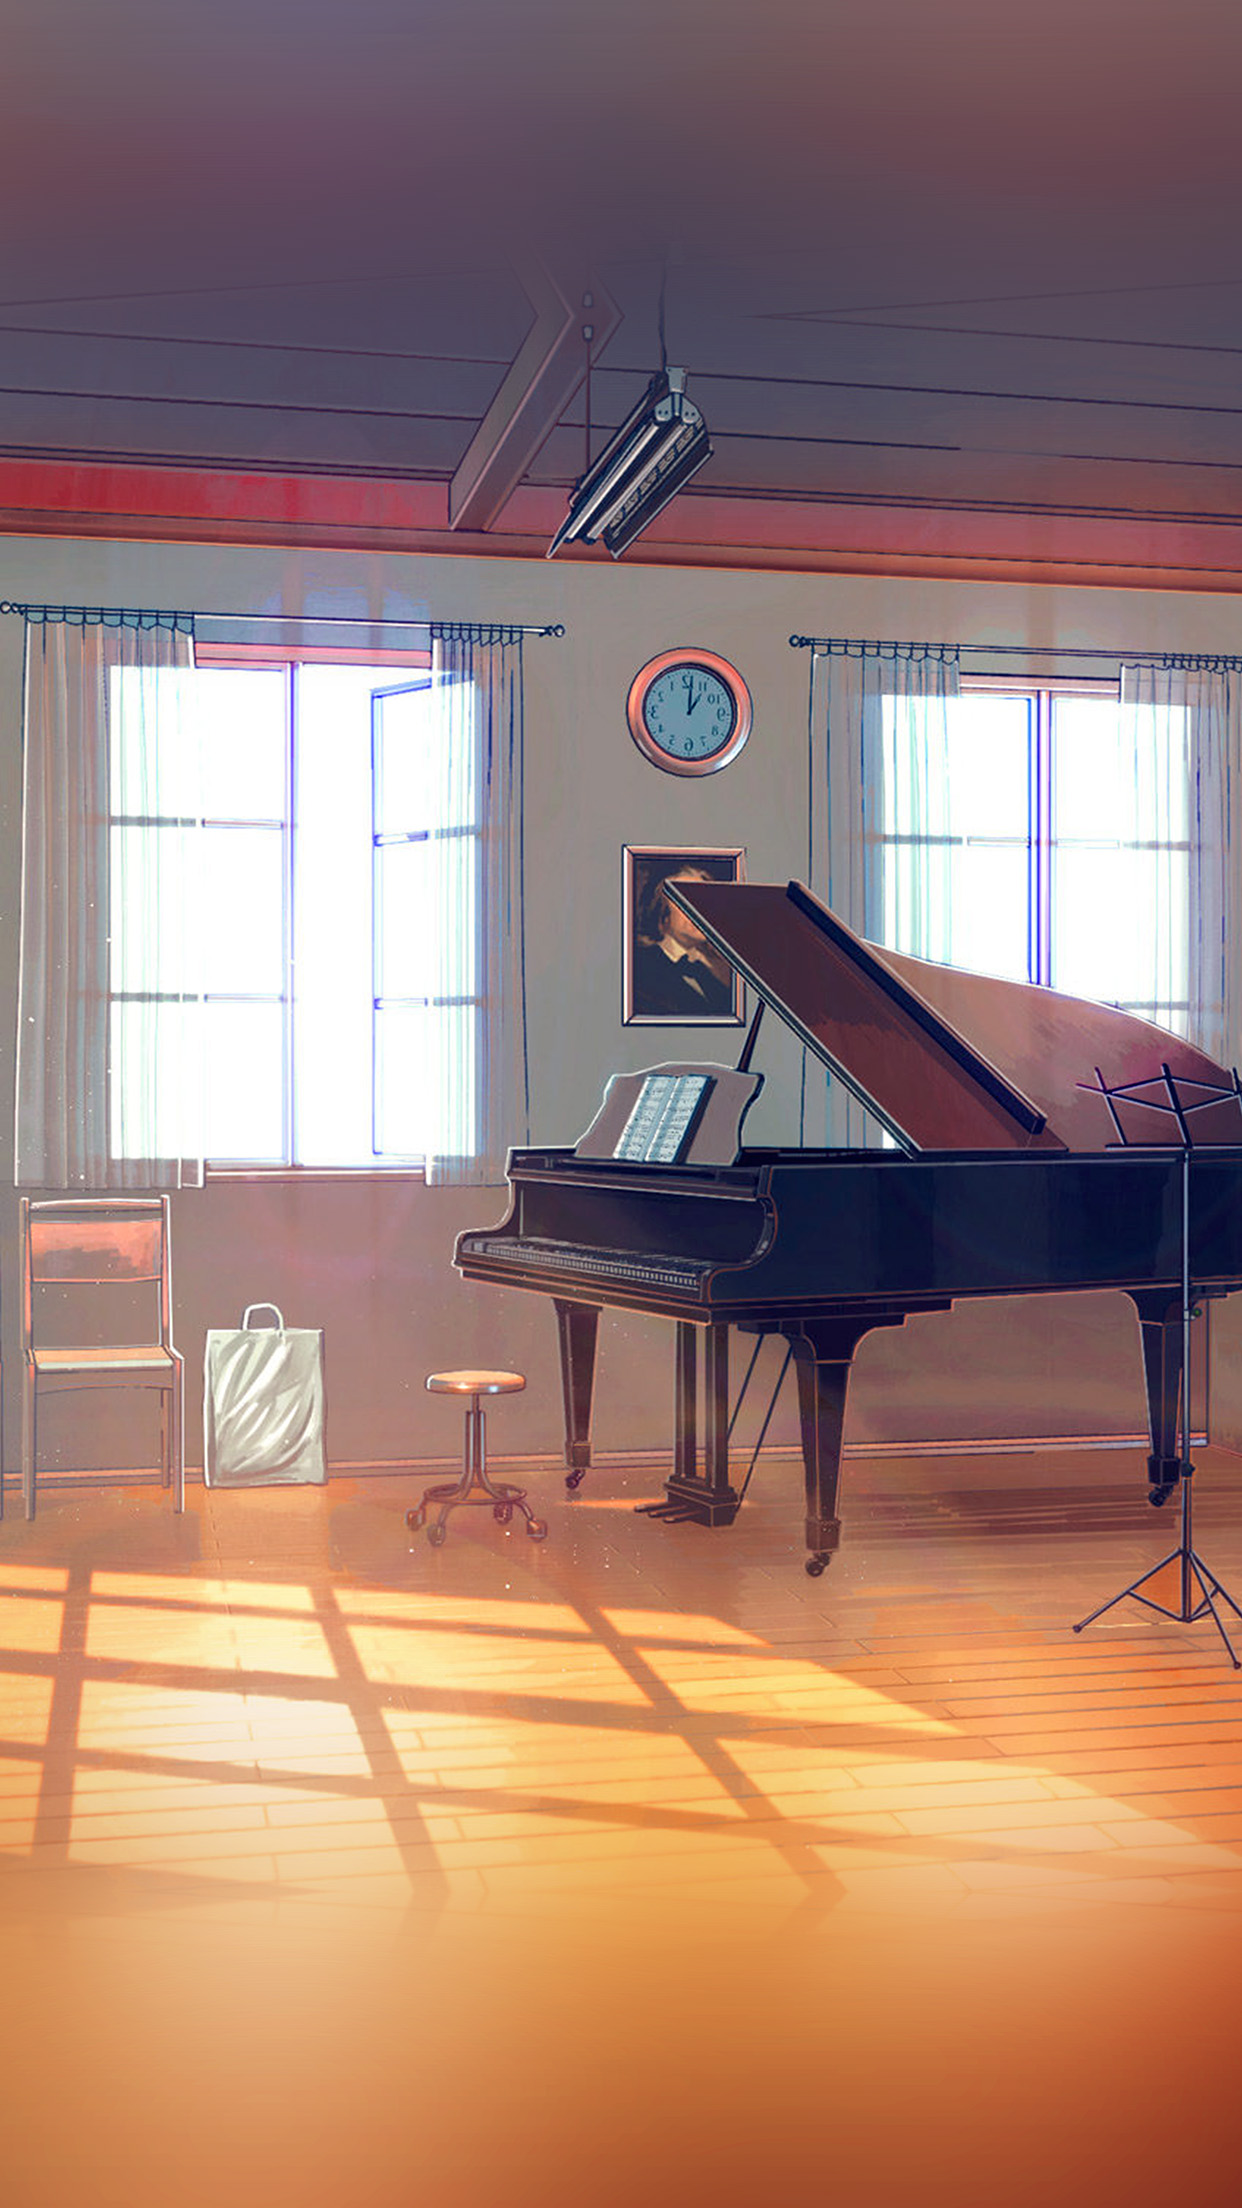 Disney Wallpaper For Iphone 4 Aw49 Arseniy Chebynkin Music Room Piano Illustration Art